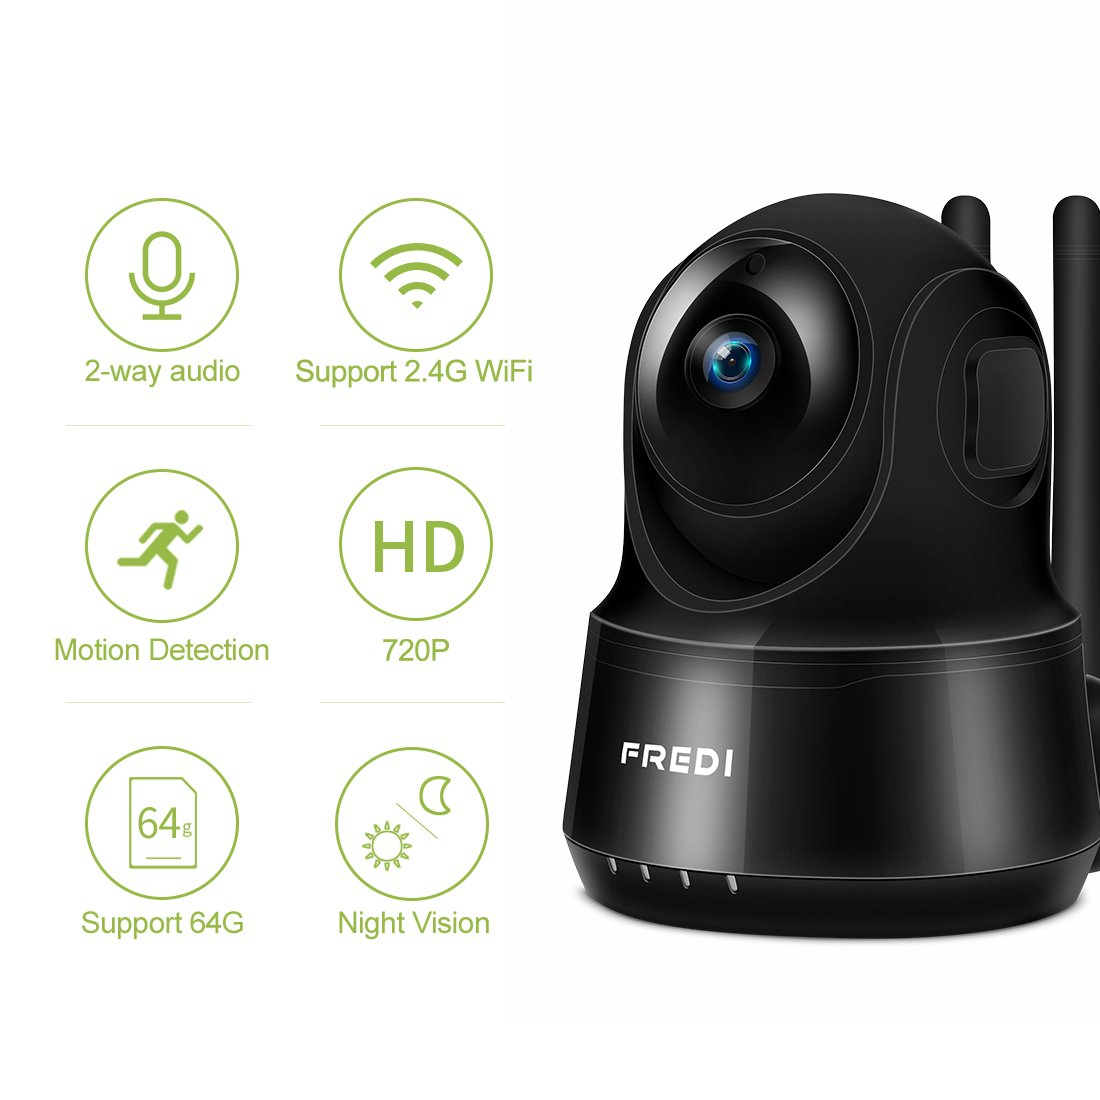 Two-Way/Audio Black IR Night/Vision 720P HD Security Camera Surveillance/Dome Camera with Motion/Detection FREDI Wireless WiFi IP Camera P2P for Baby Monitor Nanny Pet Dog Camera Pan//Tilt